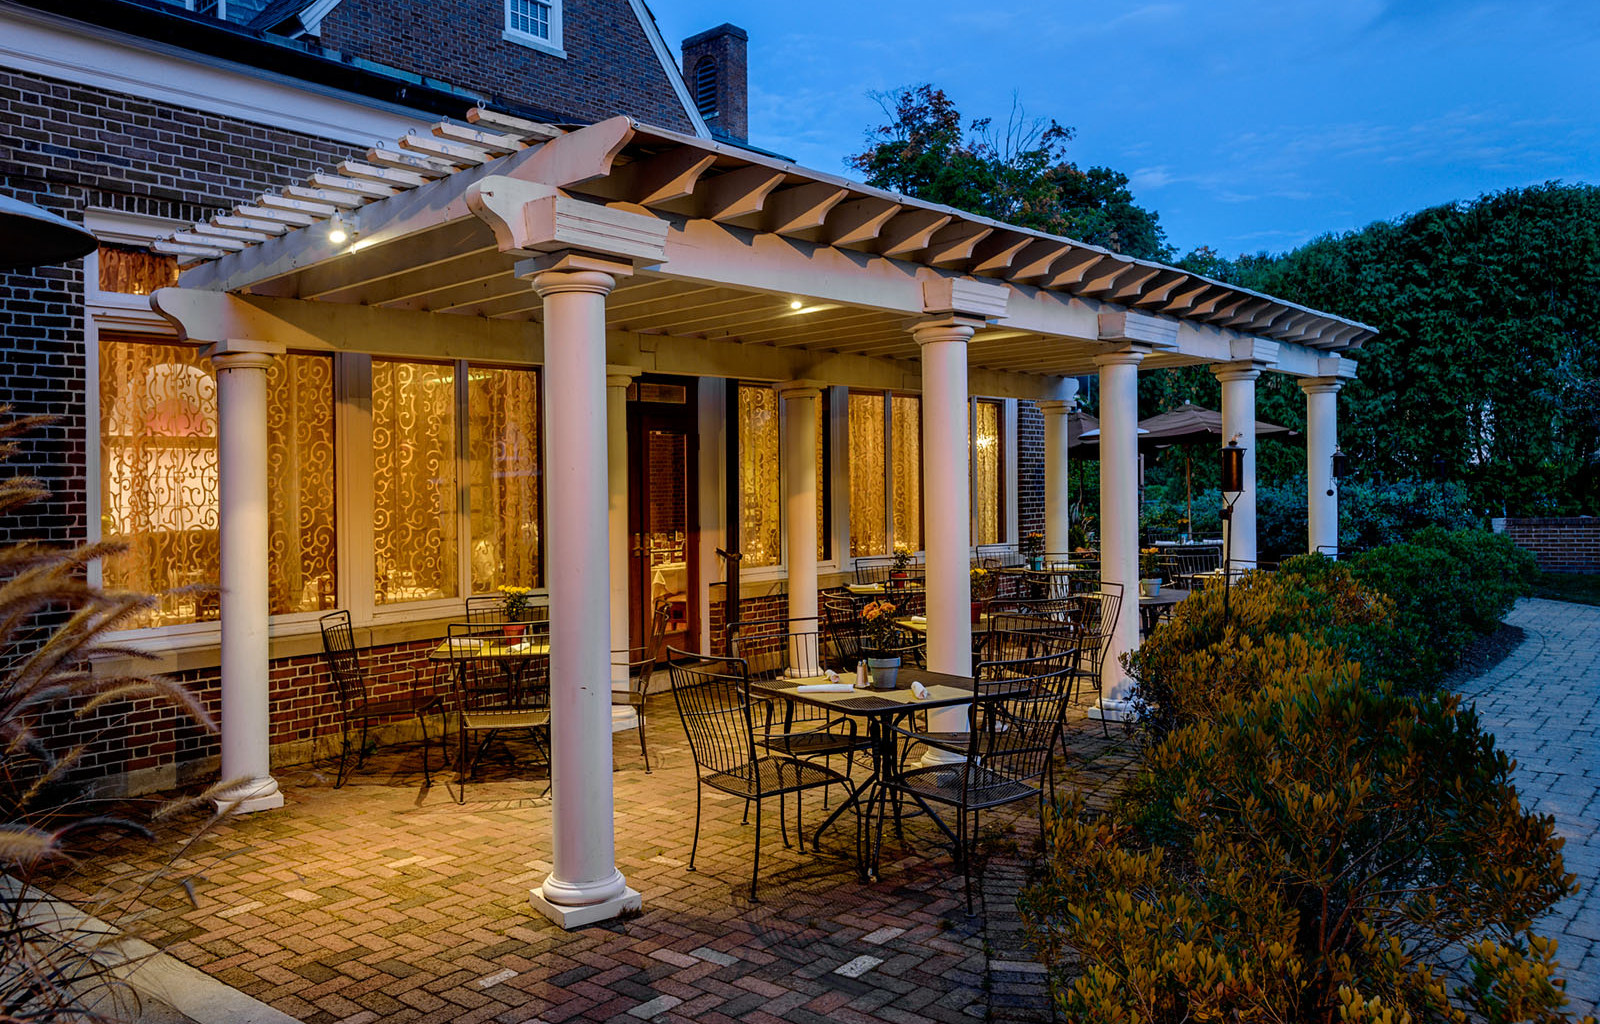 2015, July 16, THURSDAY, 5pm-8pm Summer Lawn Party at Exeter Inn